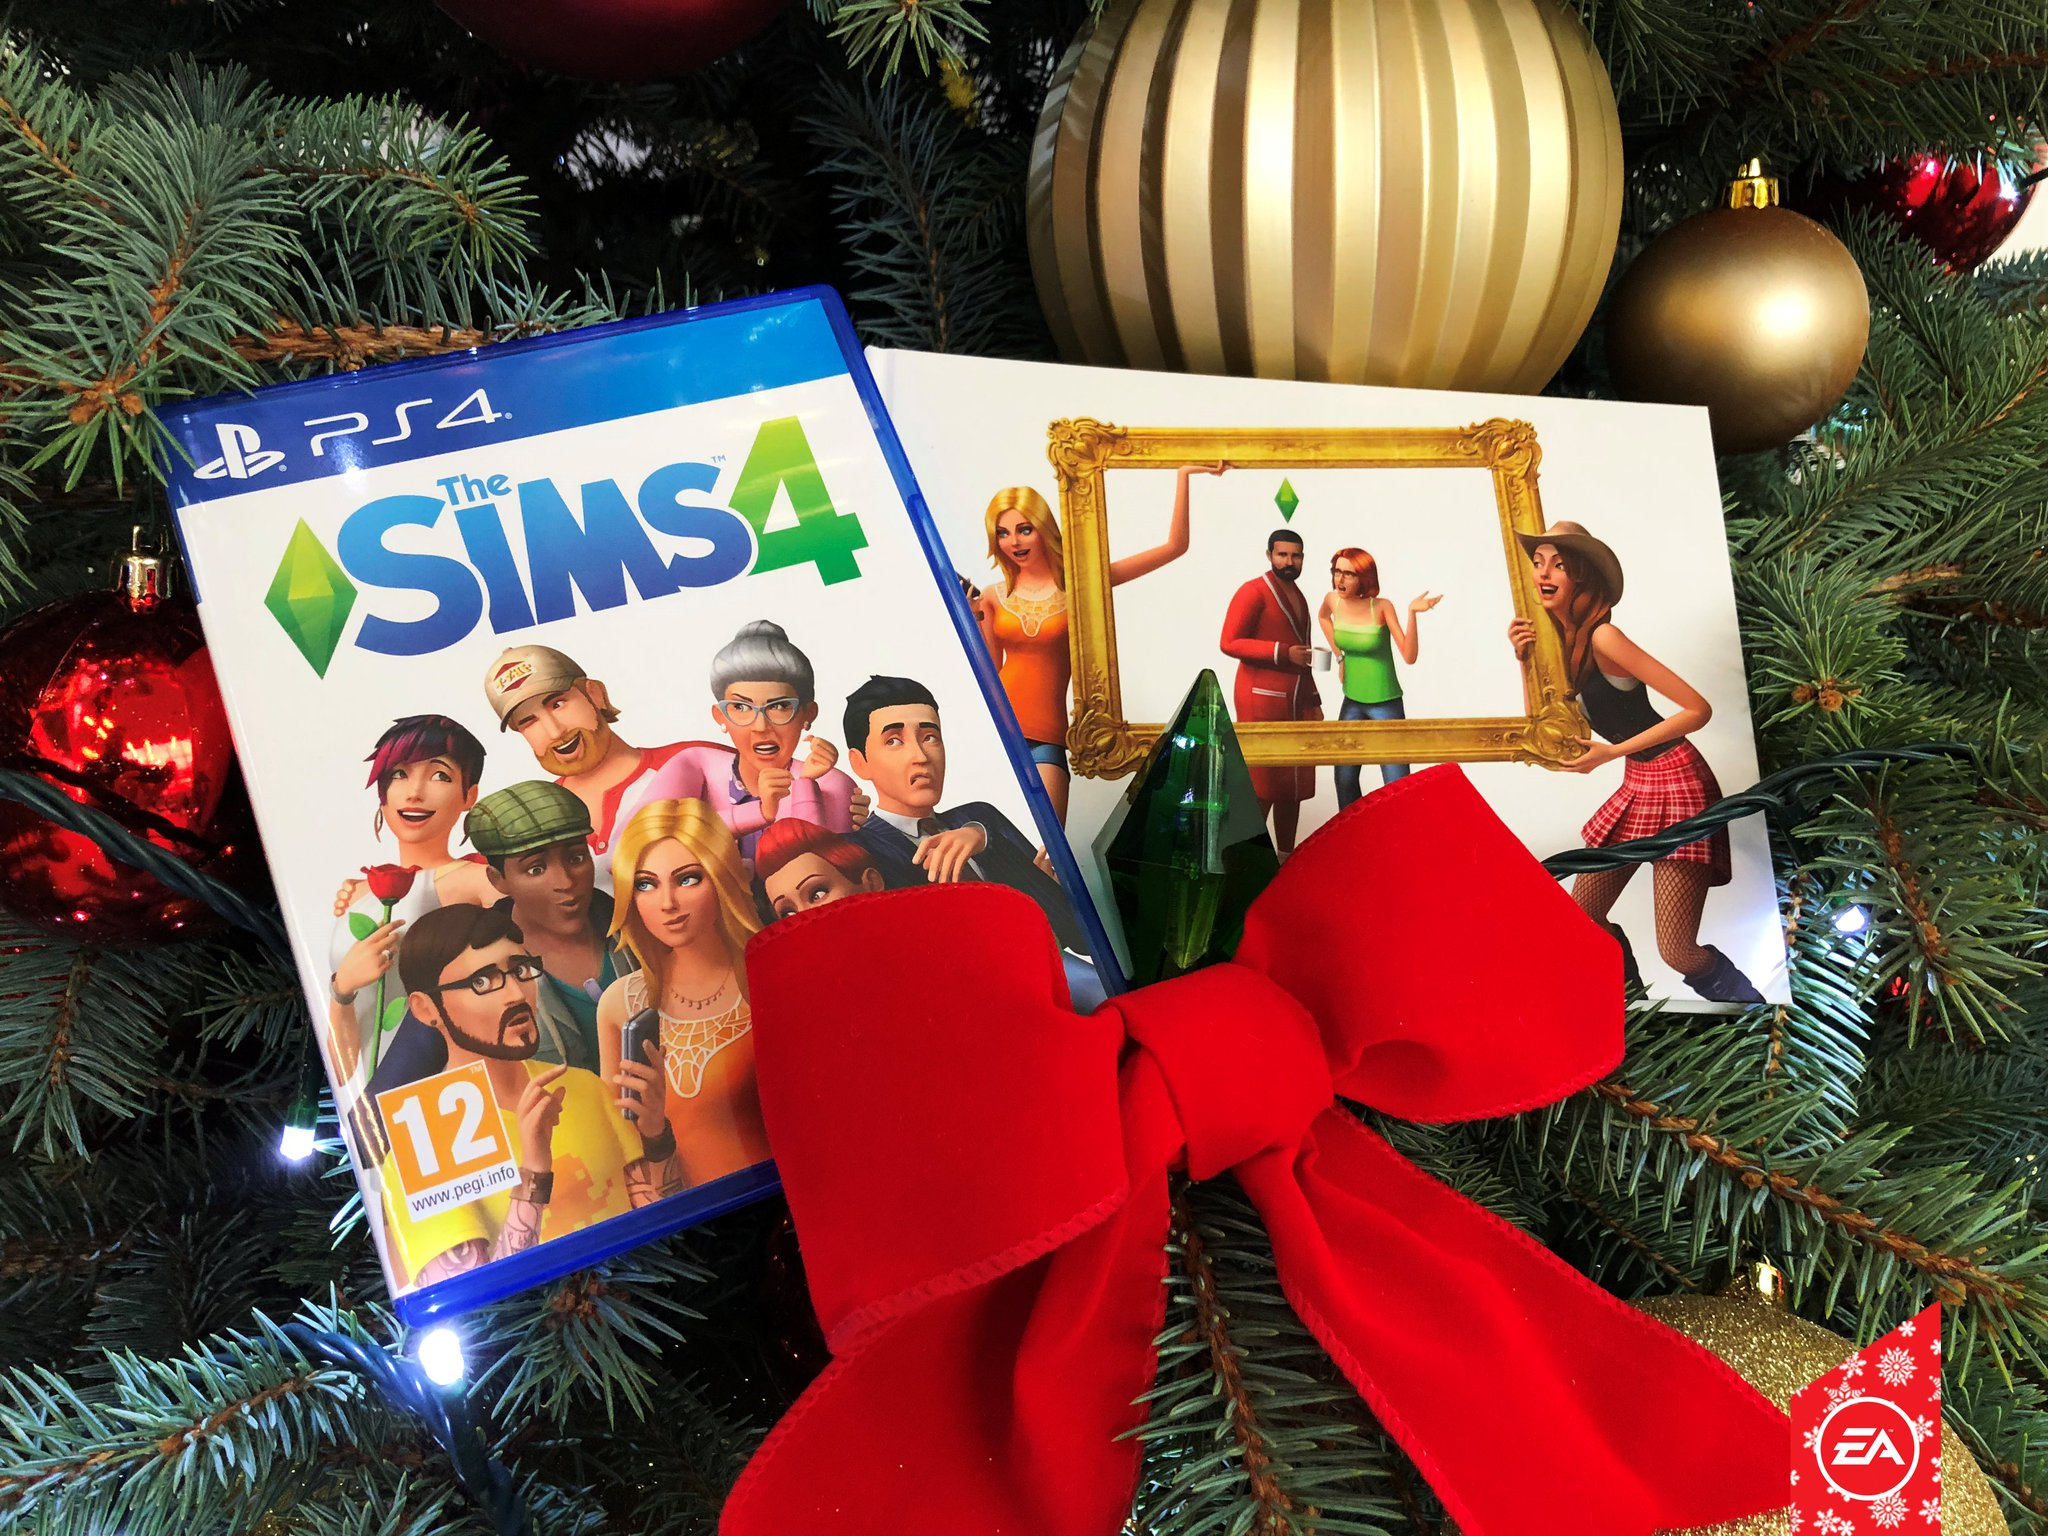 RT for the chance to win! It's Day 4 of our #EAUK12Days �� Share for the chance to win a #TheSims 4 Swag Pack ���������� https://t.co/puJeQL047t